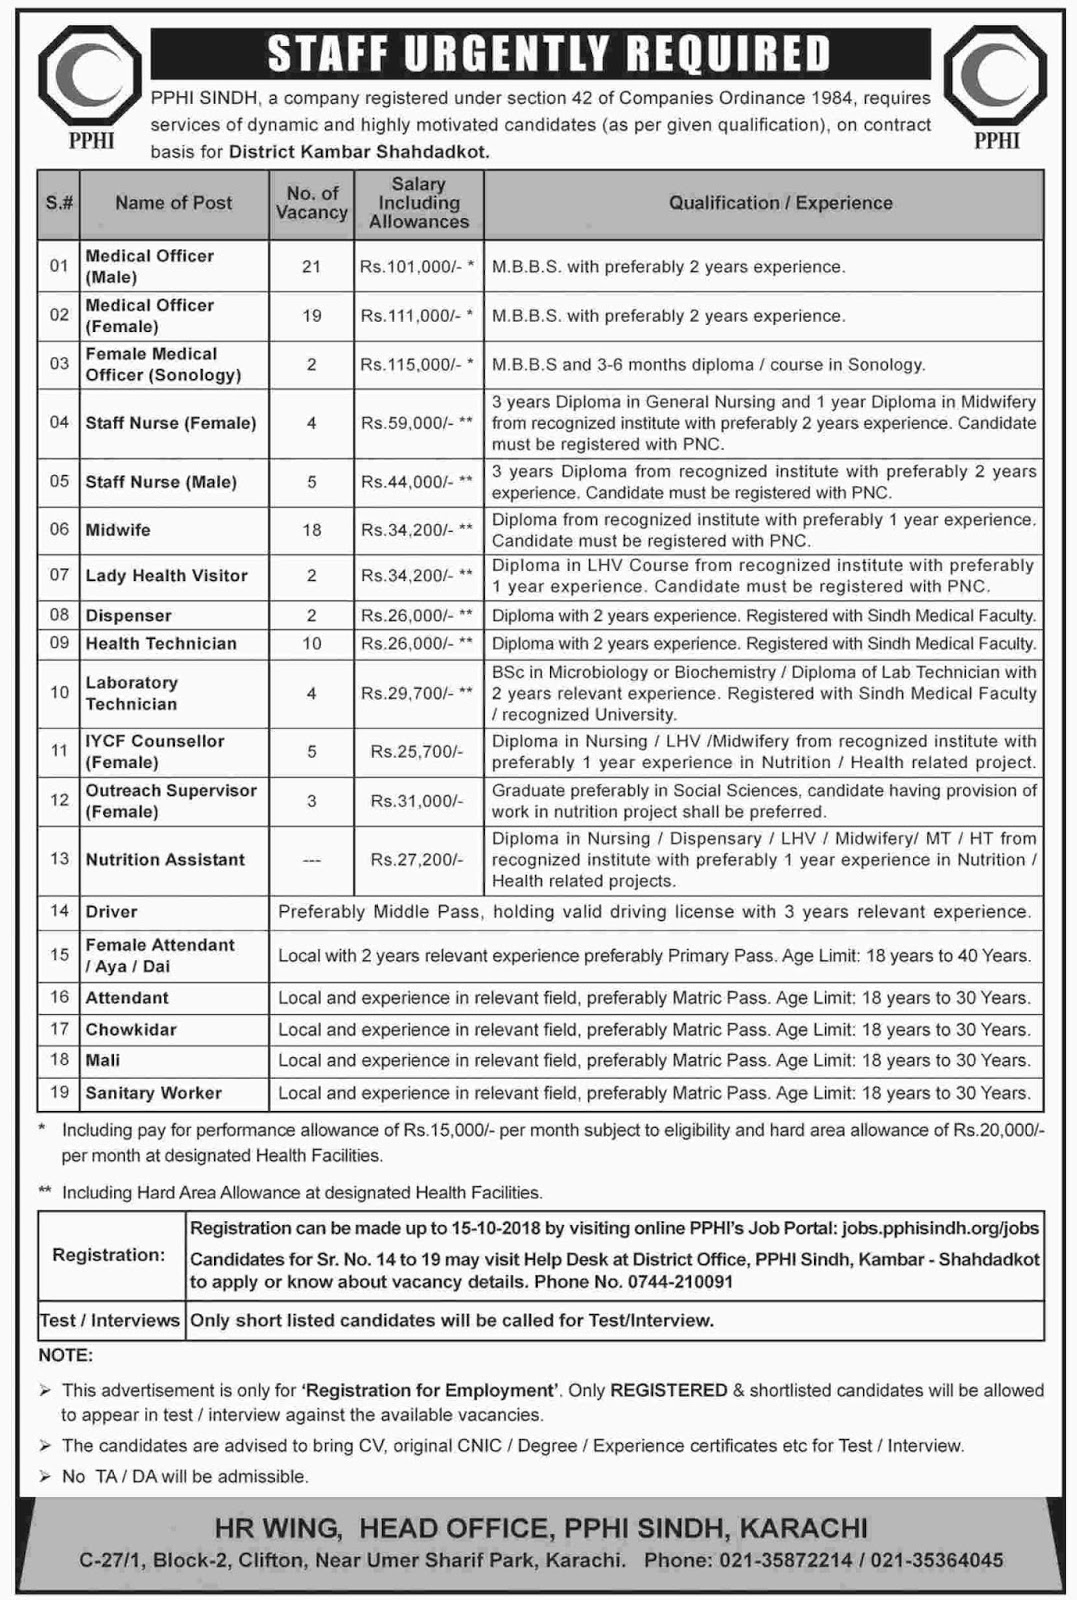 Latest Vacancies Announced in PPHI Peoples Primary Healthcare Initiative Sindh 29 September 2018 - Naya Pak Jobs